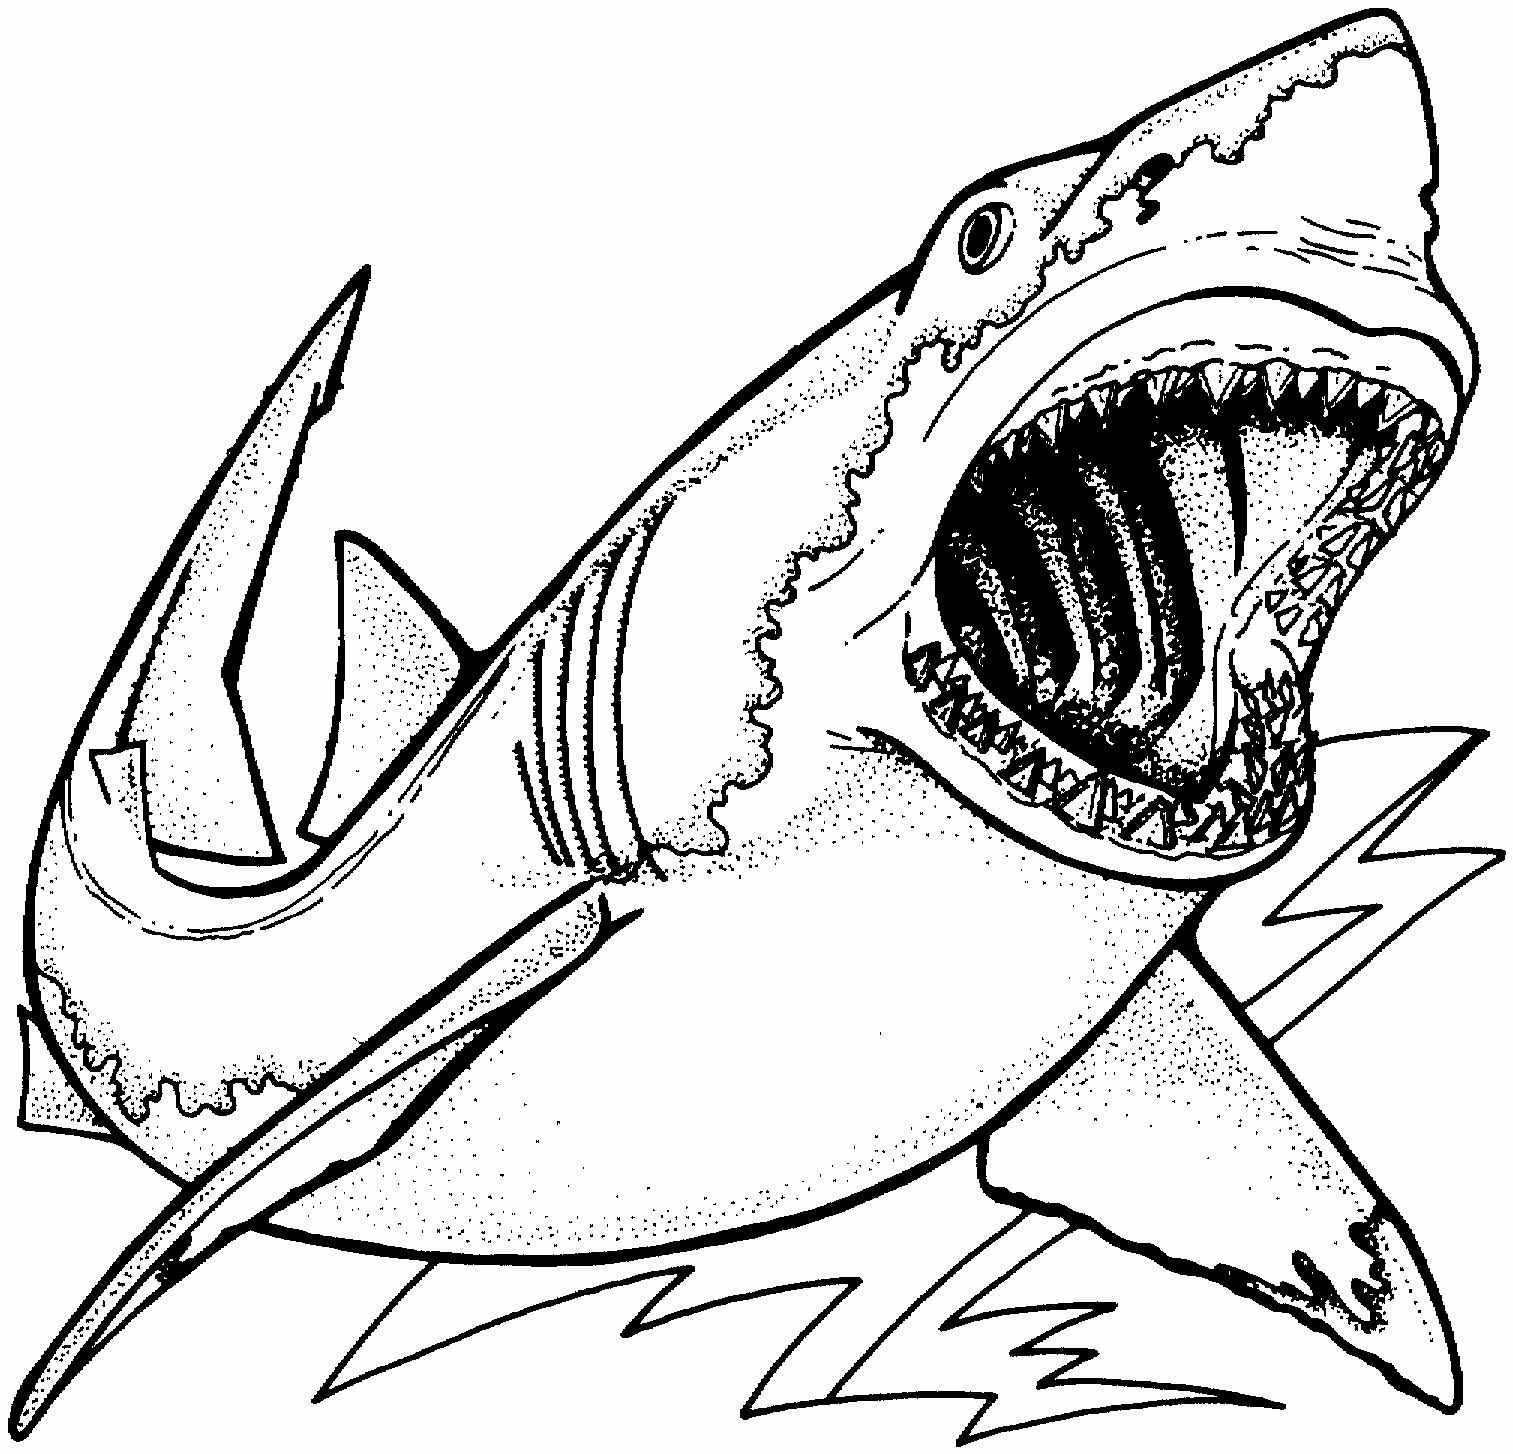 Realistic Animal Coloring Books Inspirational For Realistic Sea Animal Coloring Pages Shark In 2020 Shark Coloring Pages Animal Coloring Pages Coloring Pages